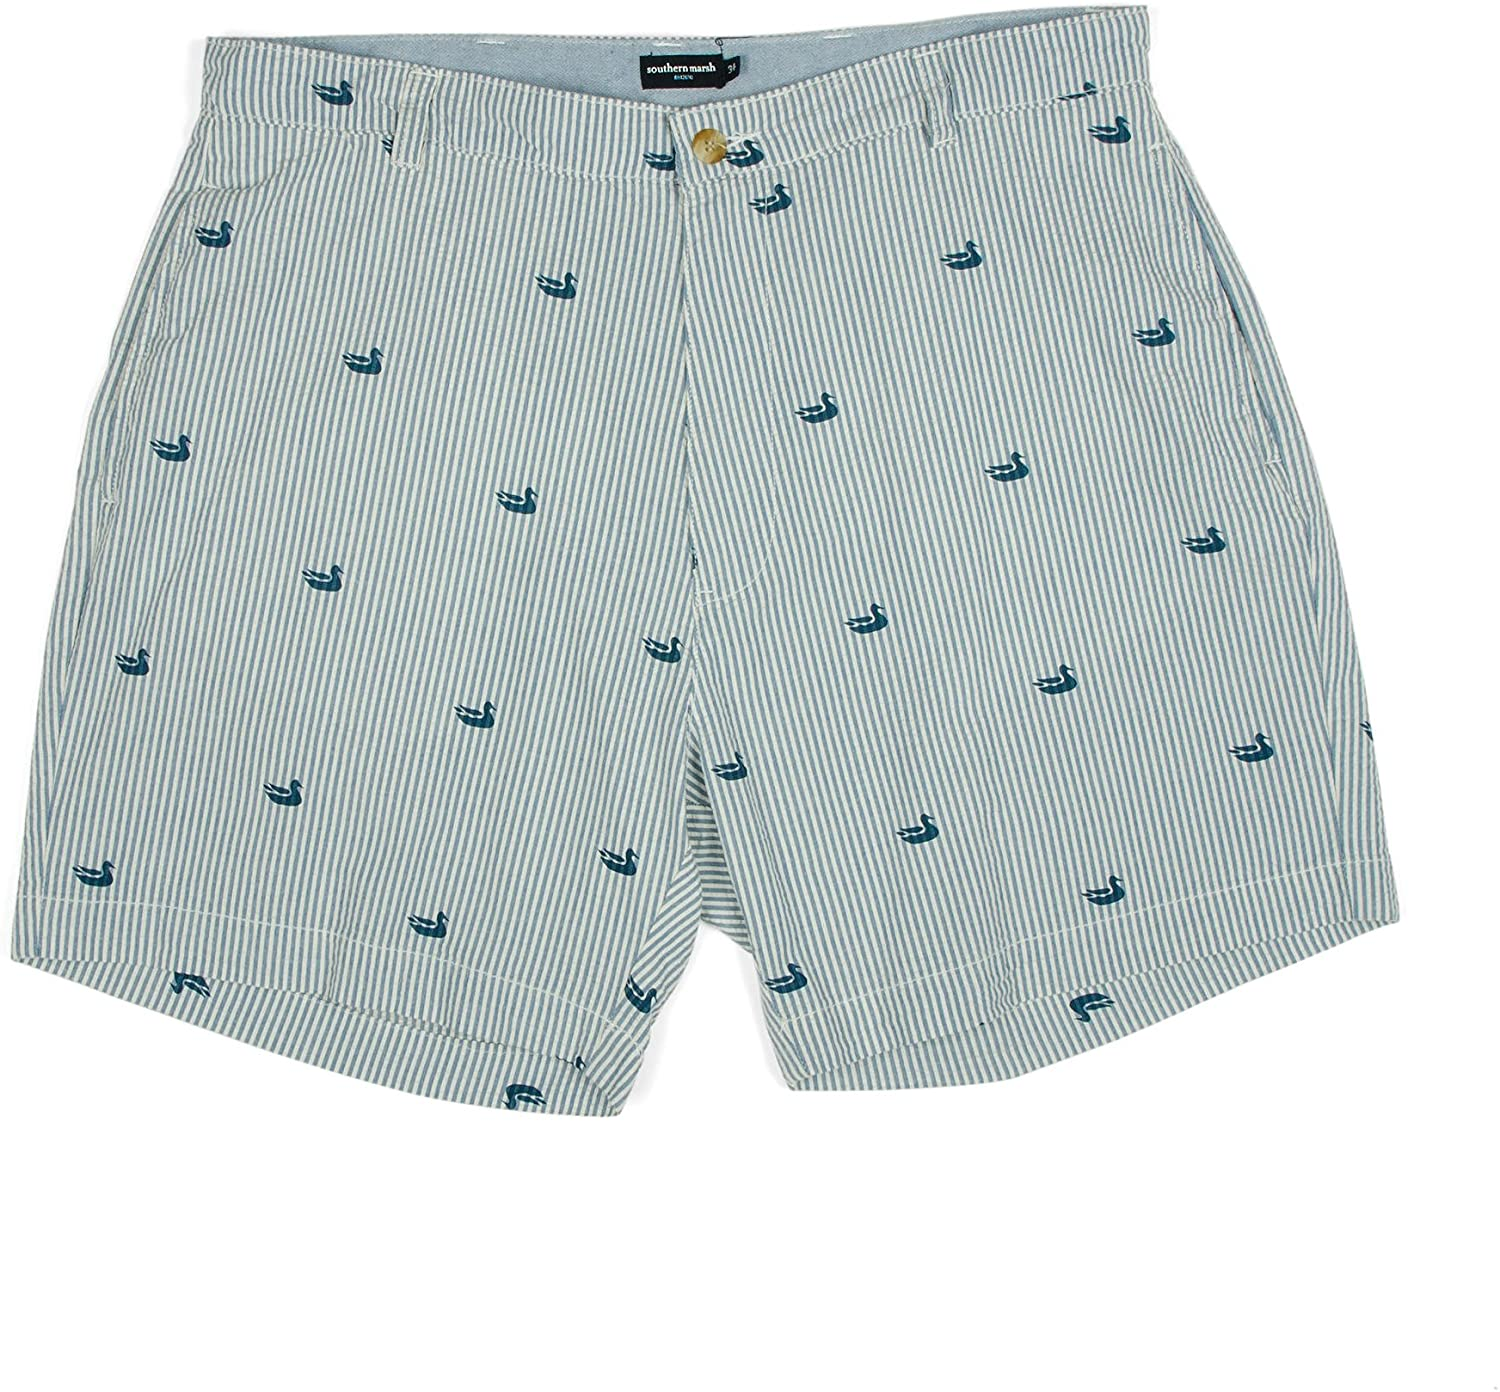 Southern Marsh Regatta Short 6 - Flat